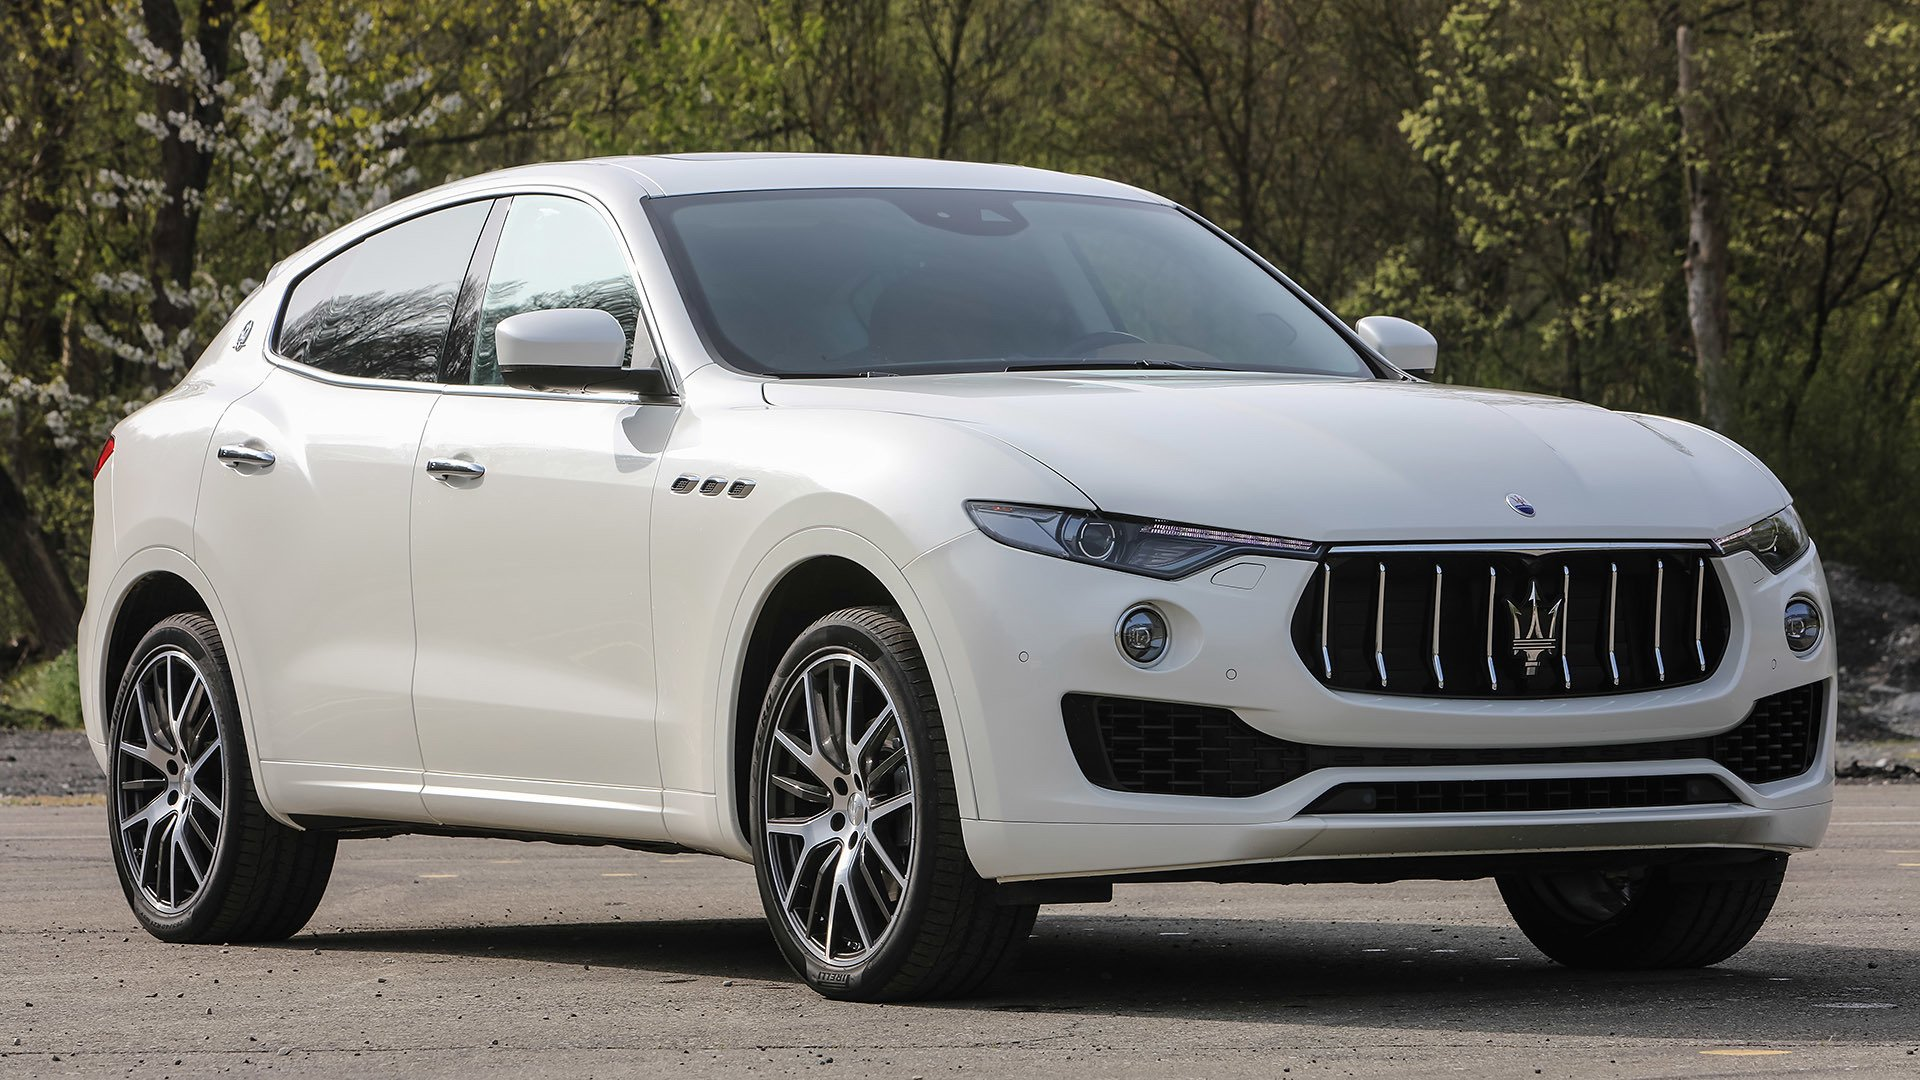 Maserati Levante Cars Suv White 2016 Wallpaper 1920x1080